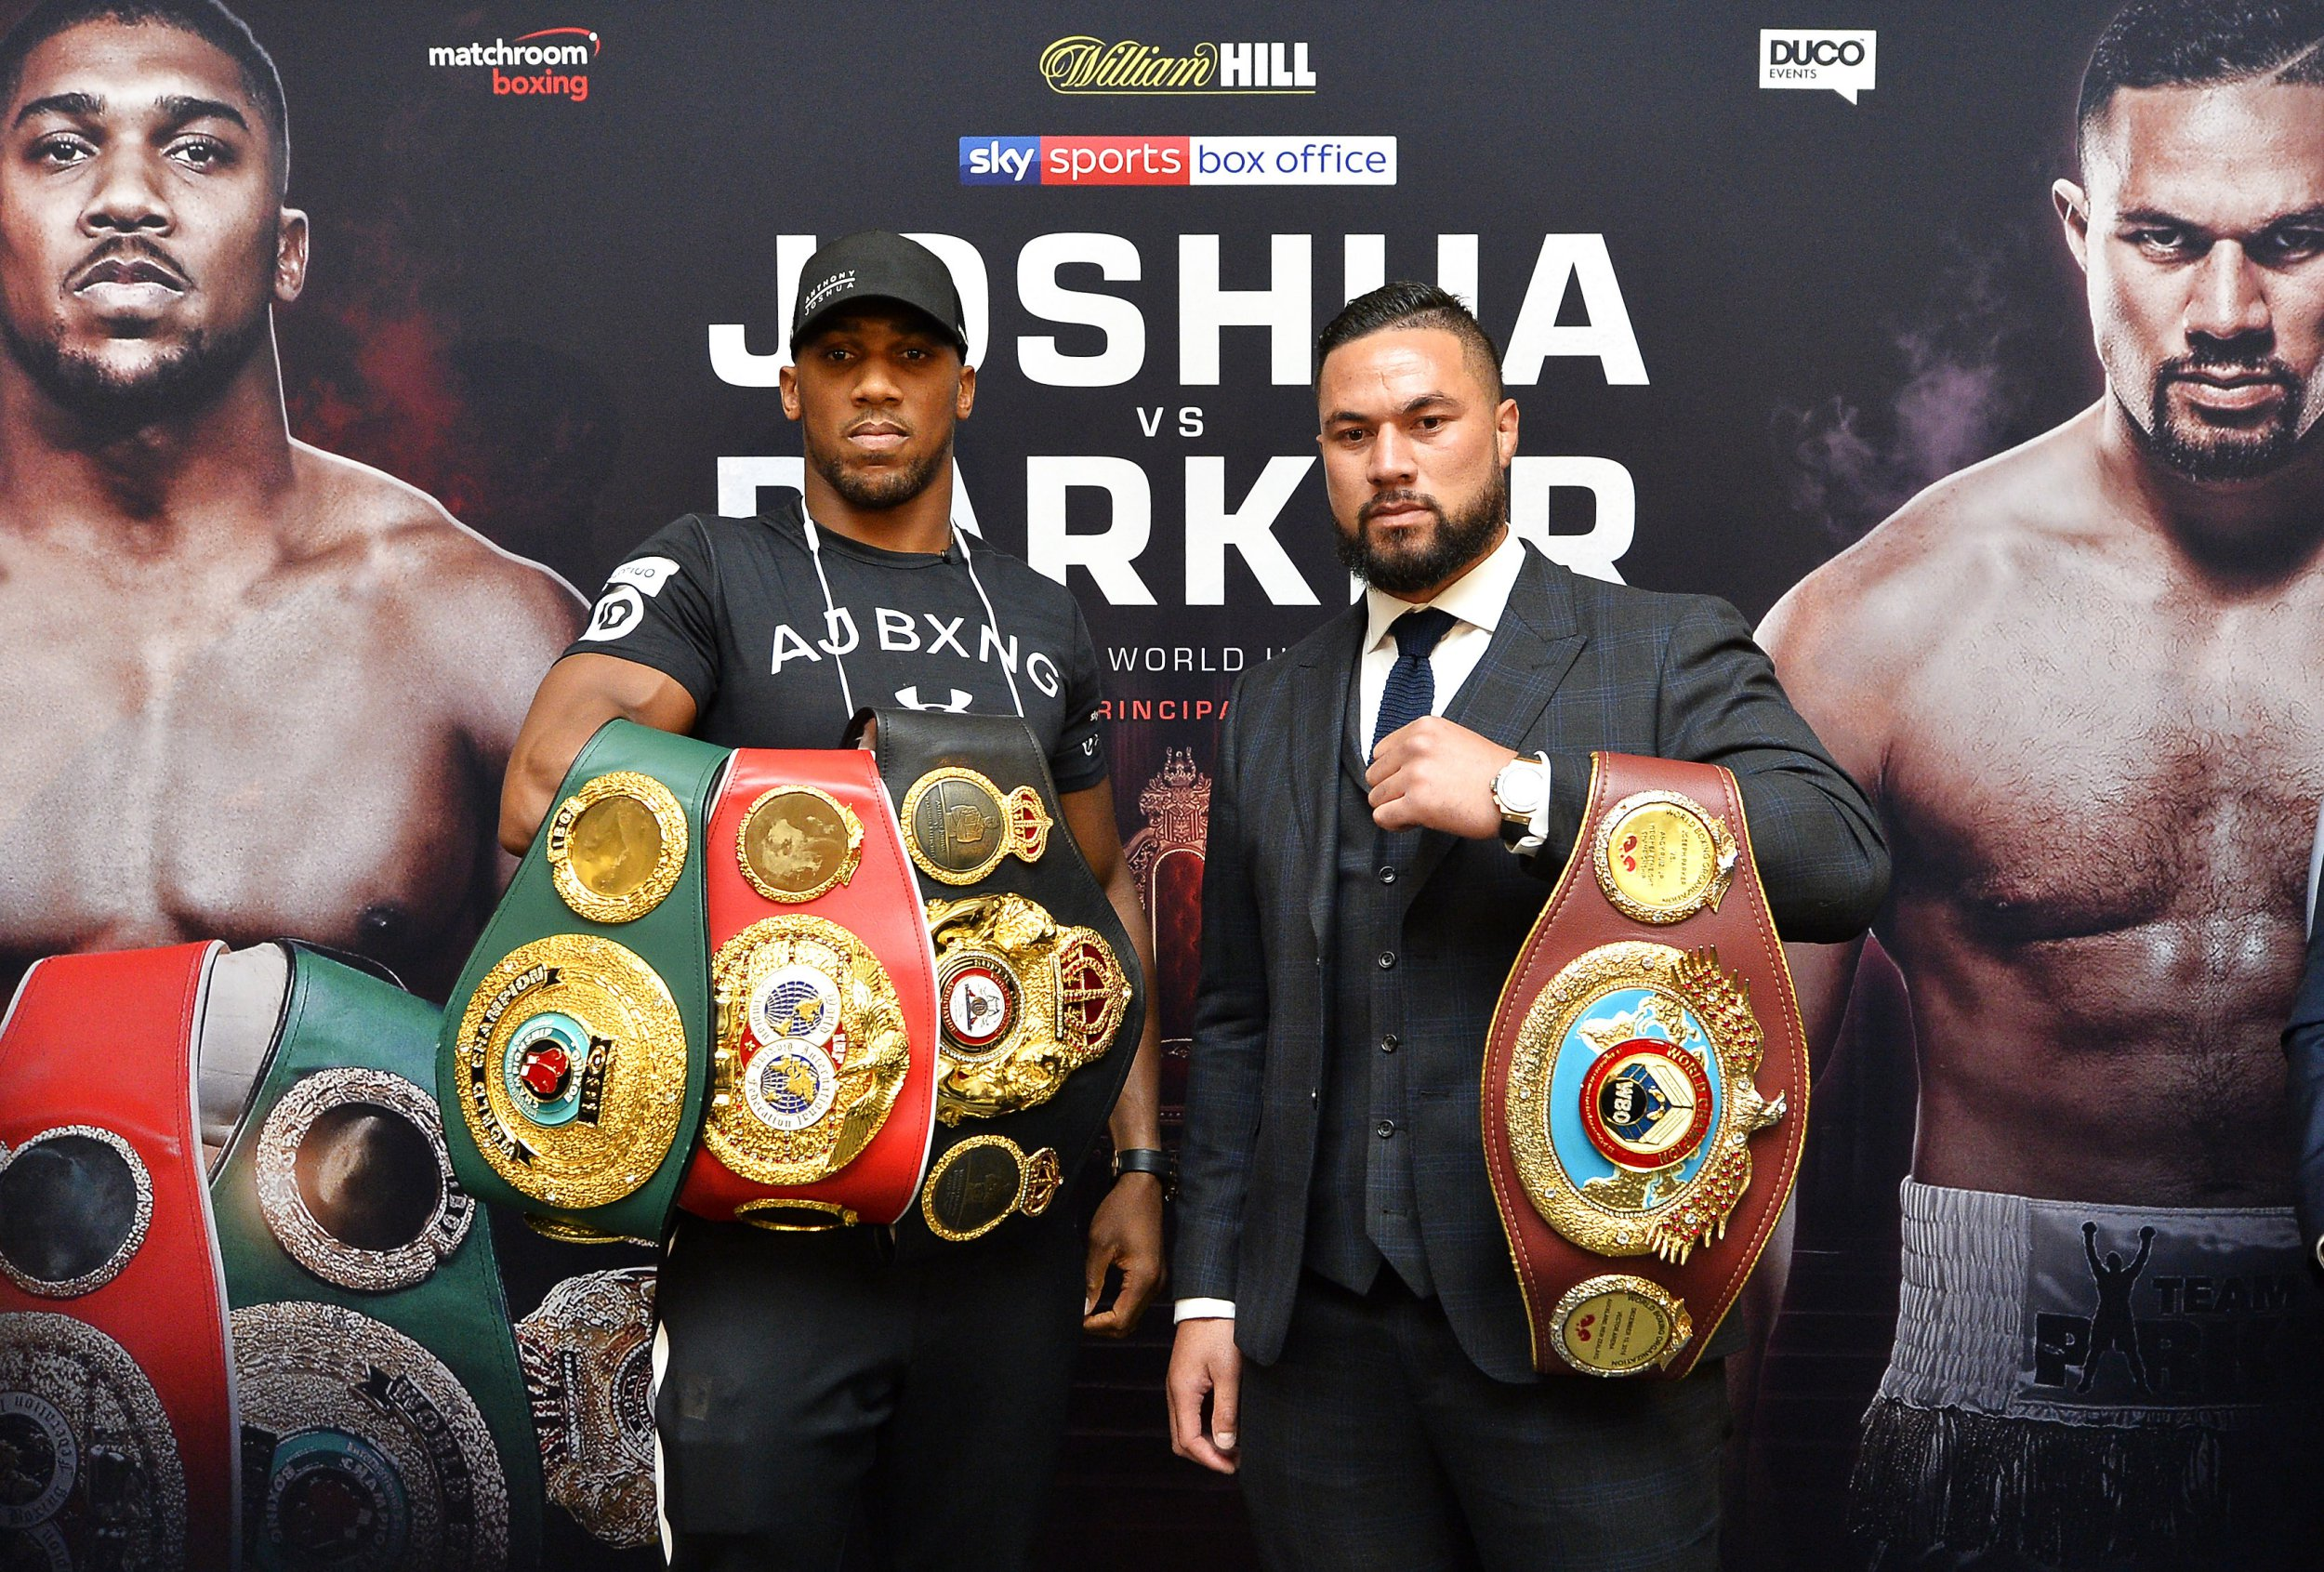 More Anthony Joshua tickets for next fight vs Joseph Parker to be released on Monday – price and where to get them